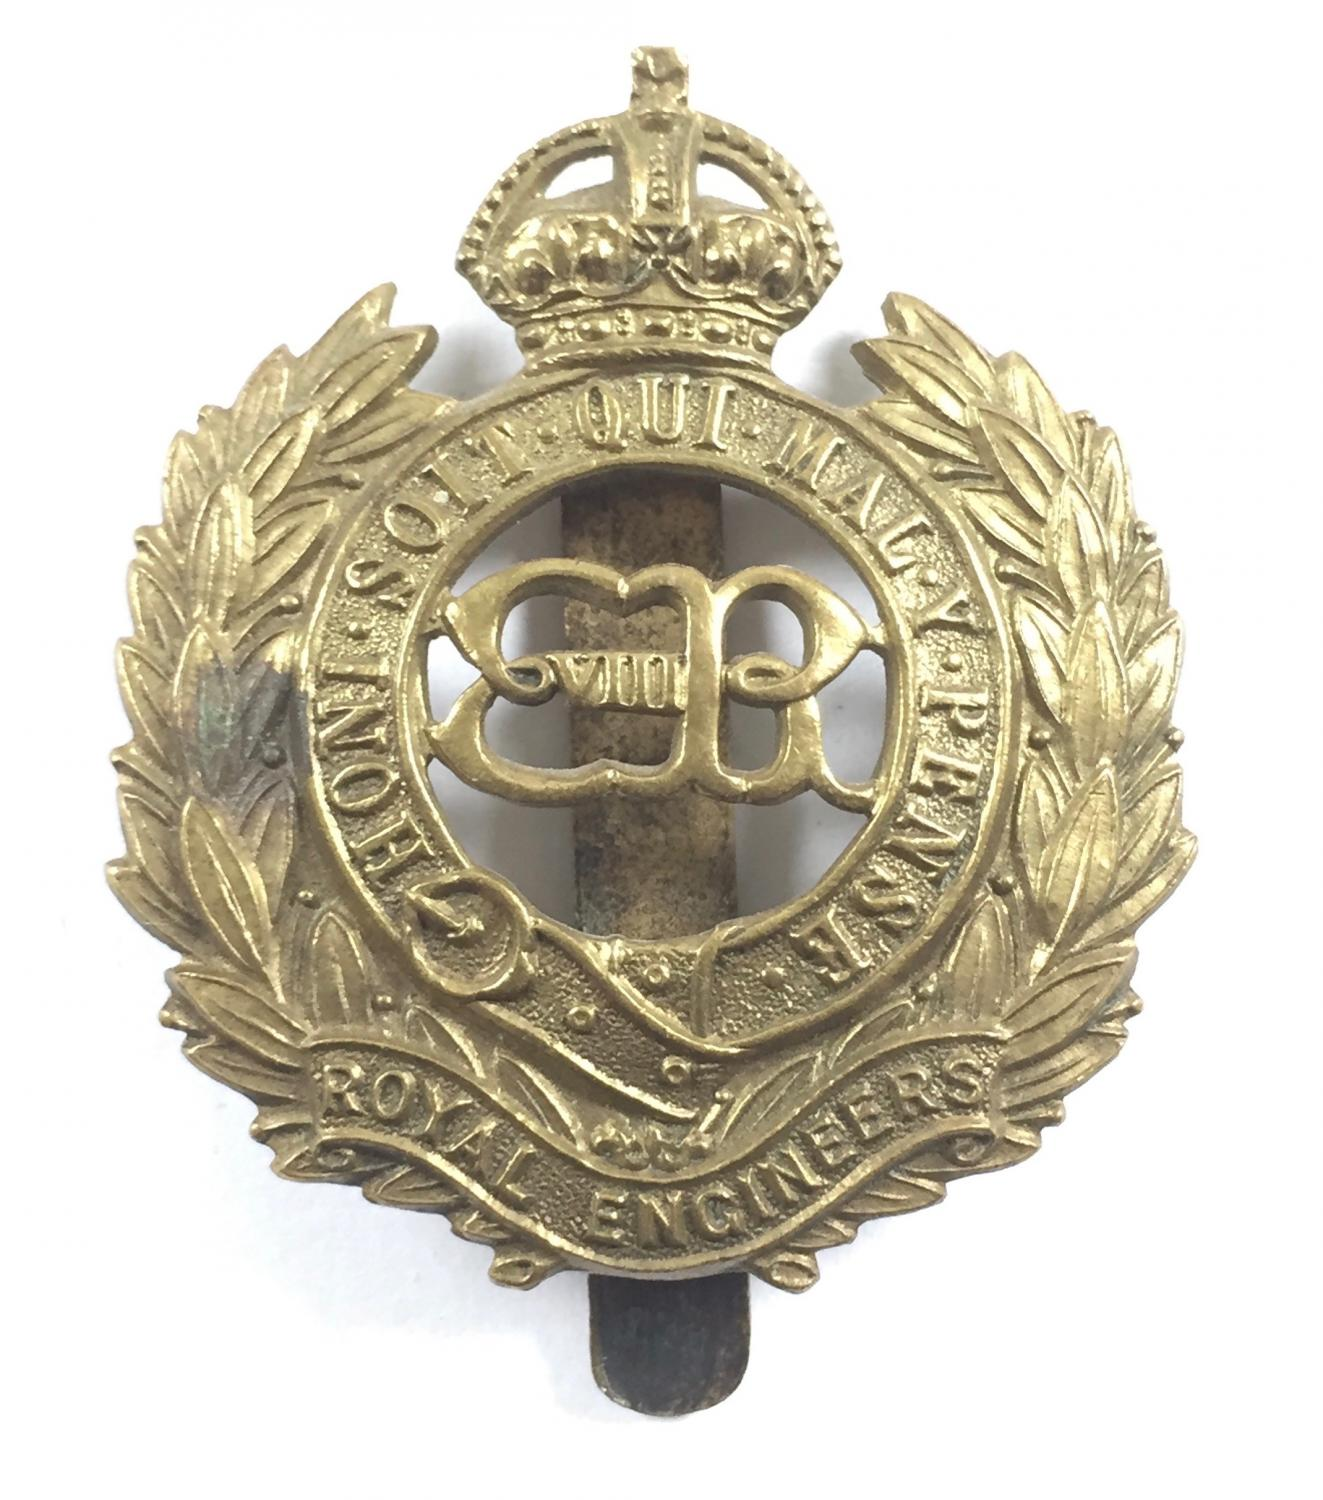 Royal Engineers rare Edward VIII OR's brass badge